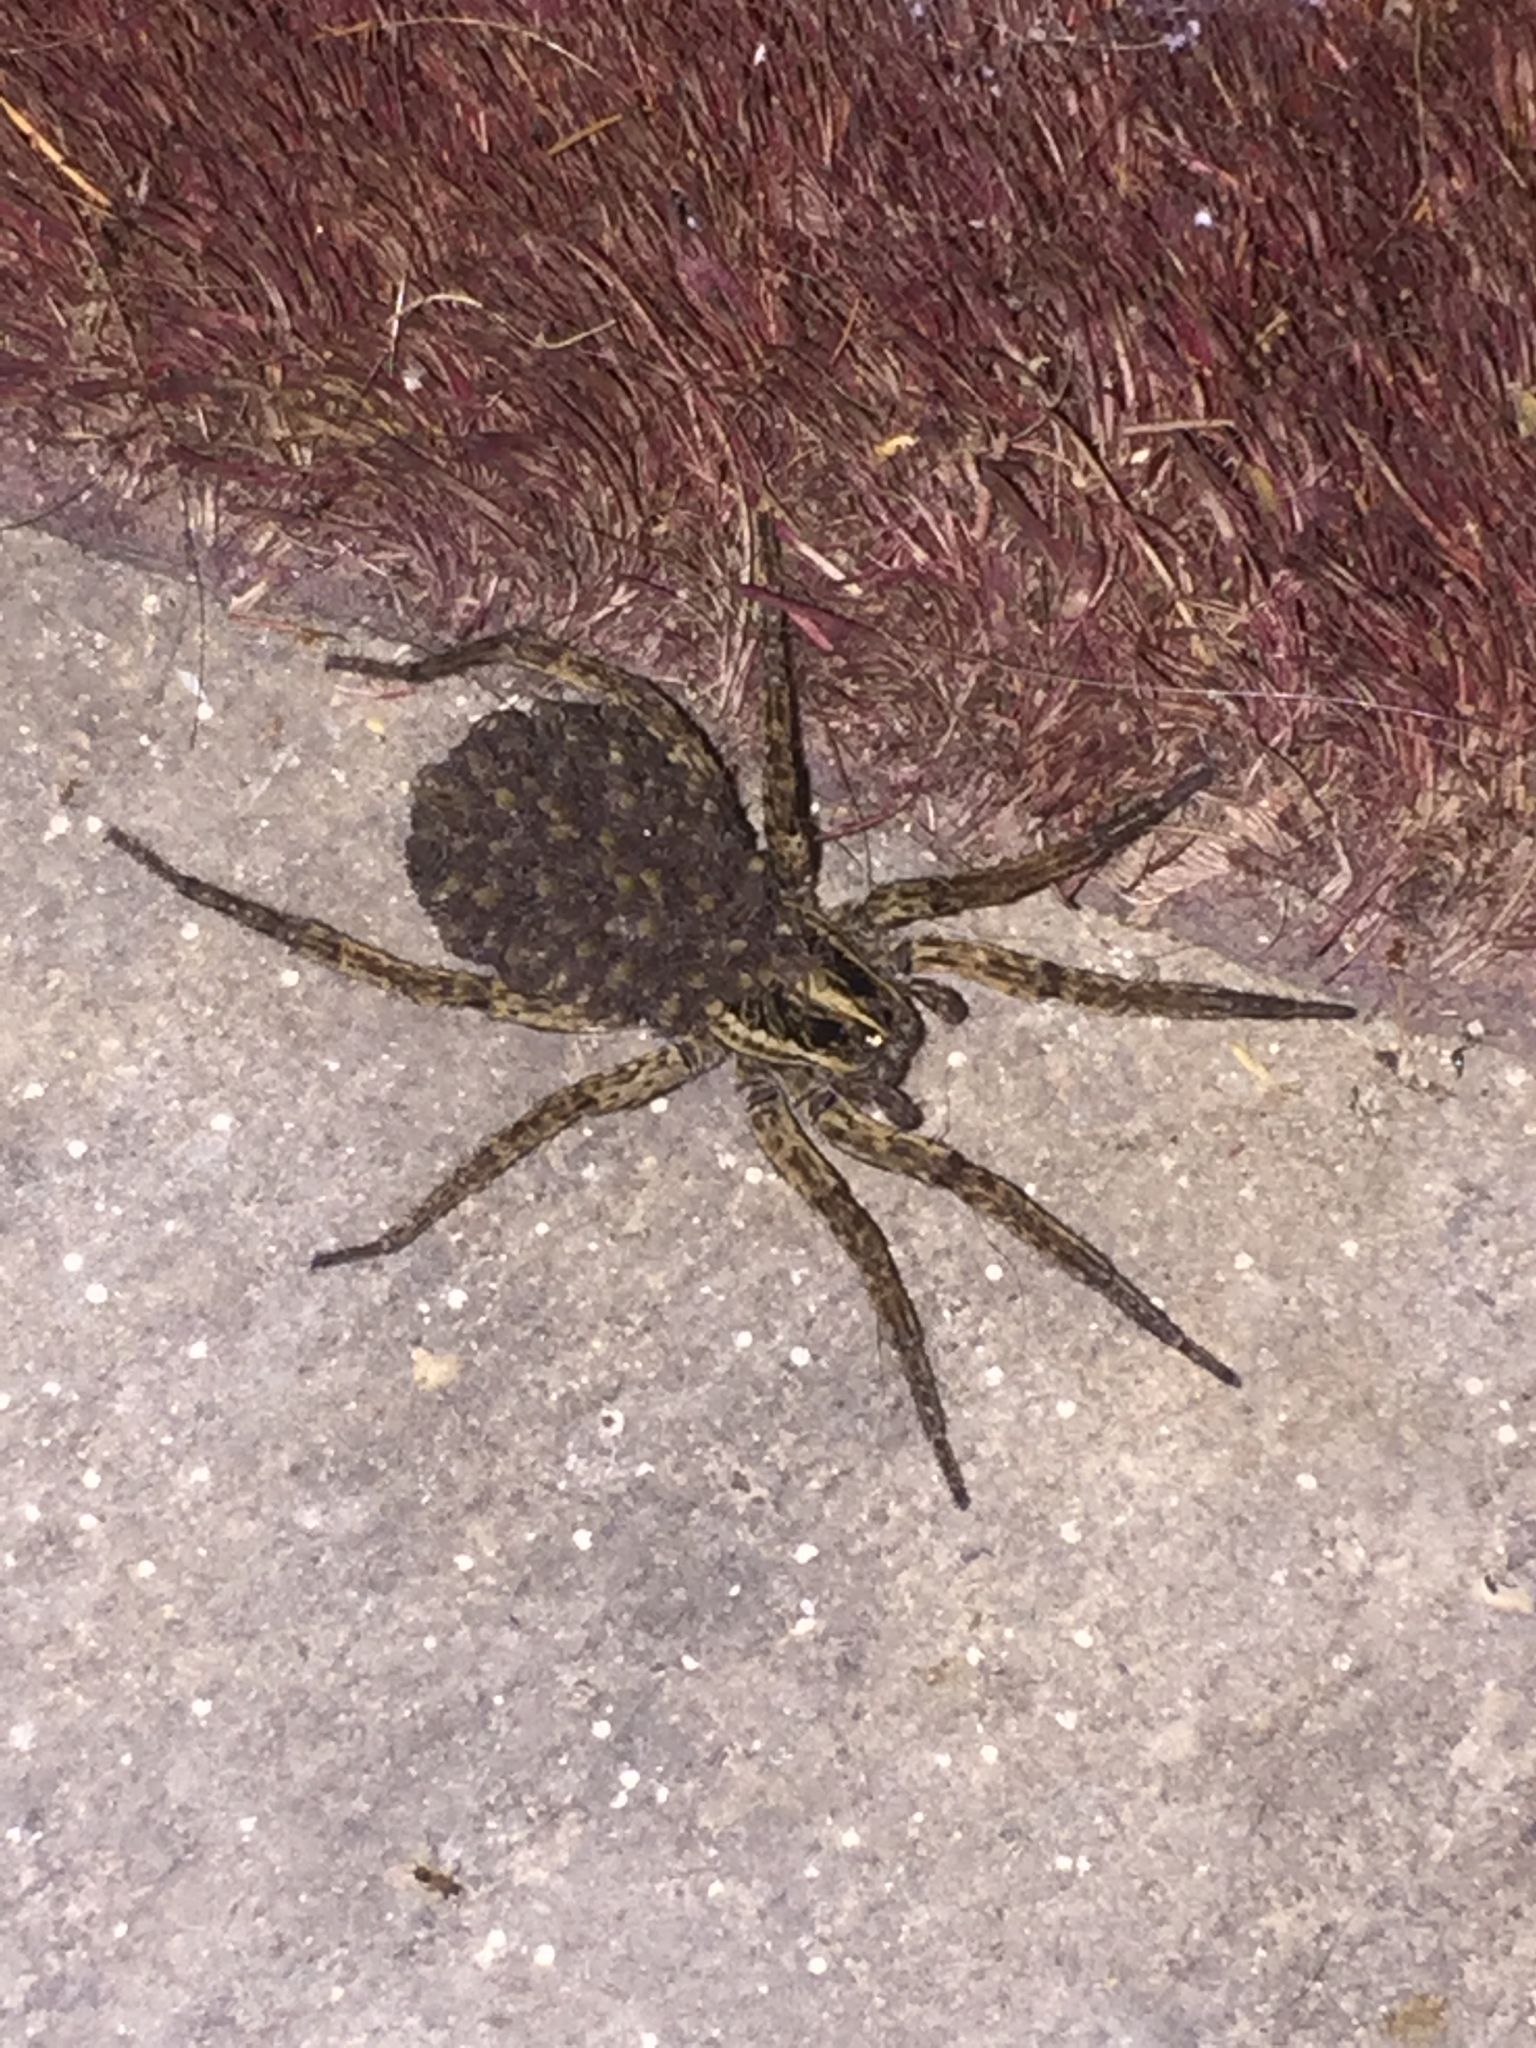 Texas Woman Finds Giant Wolf Spider Outside Her Home After